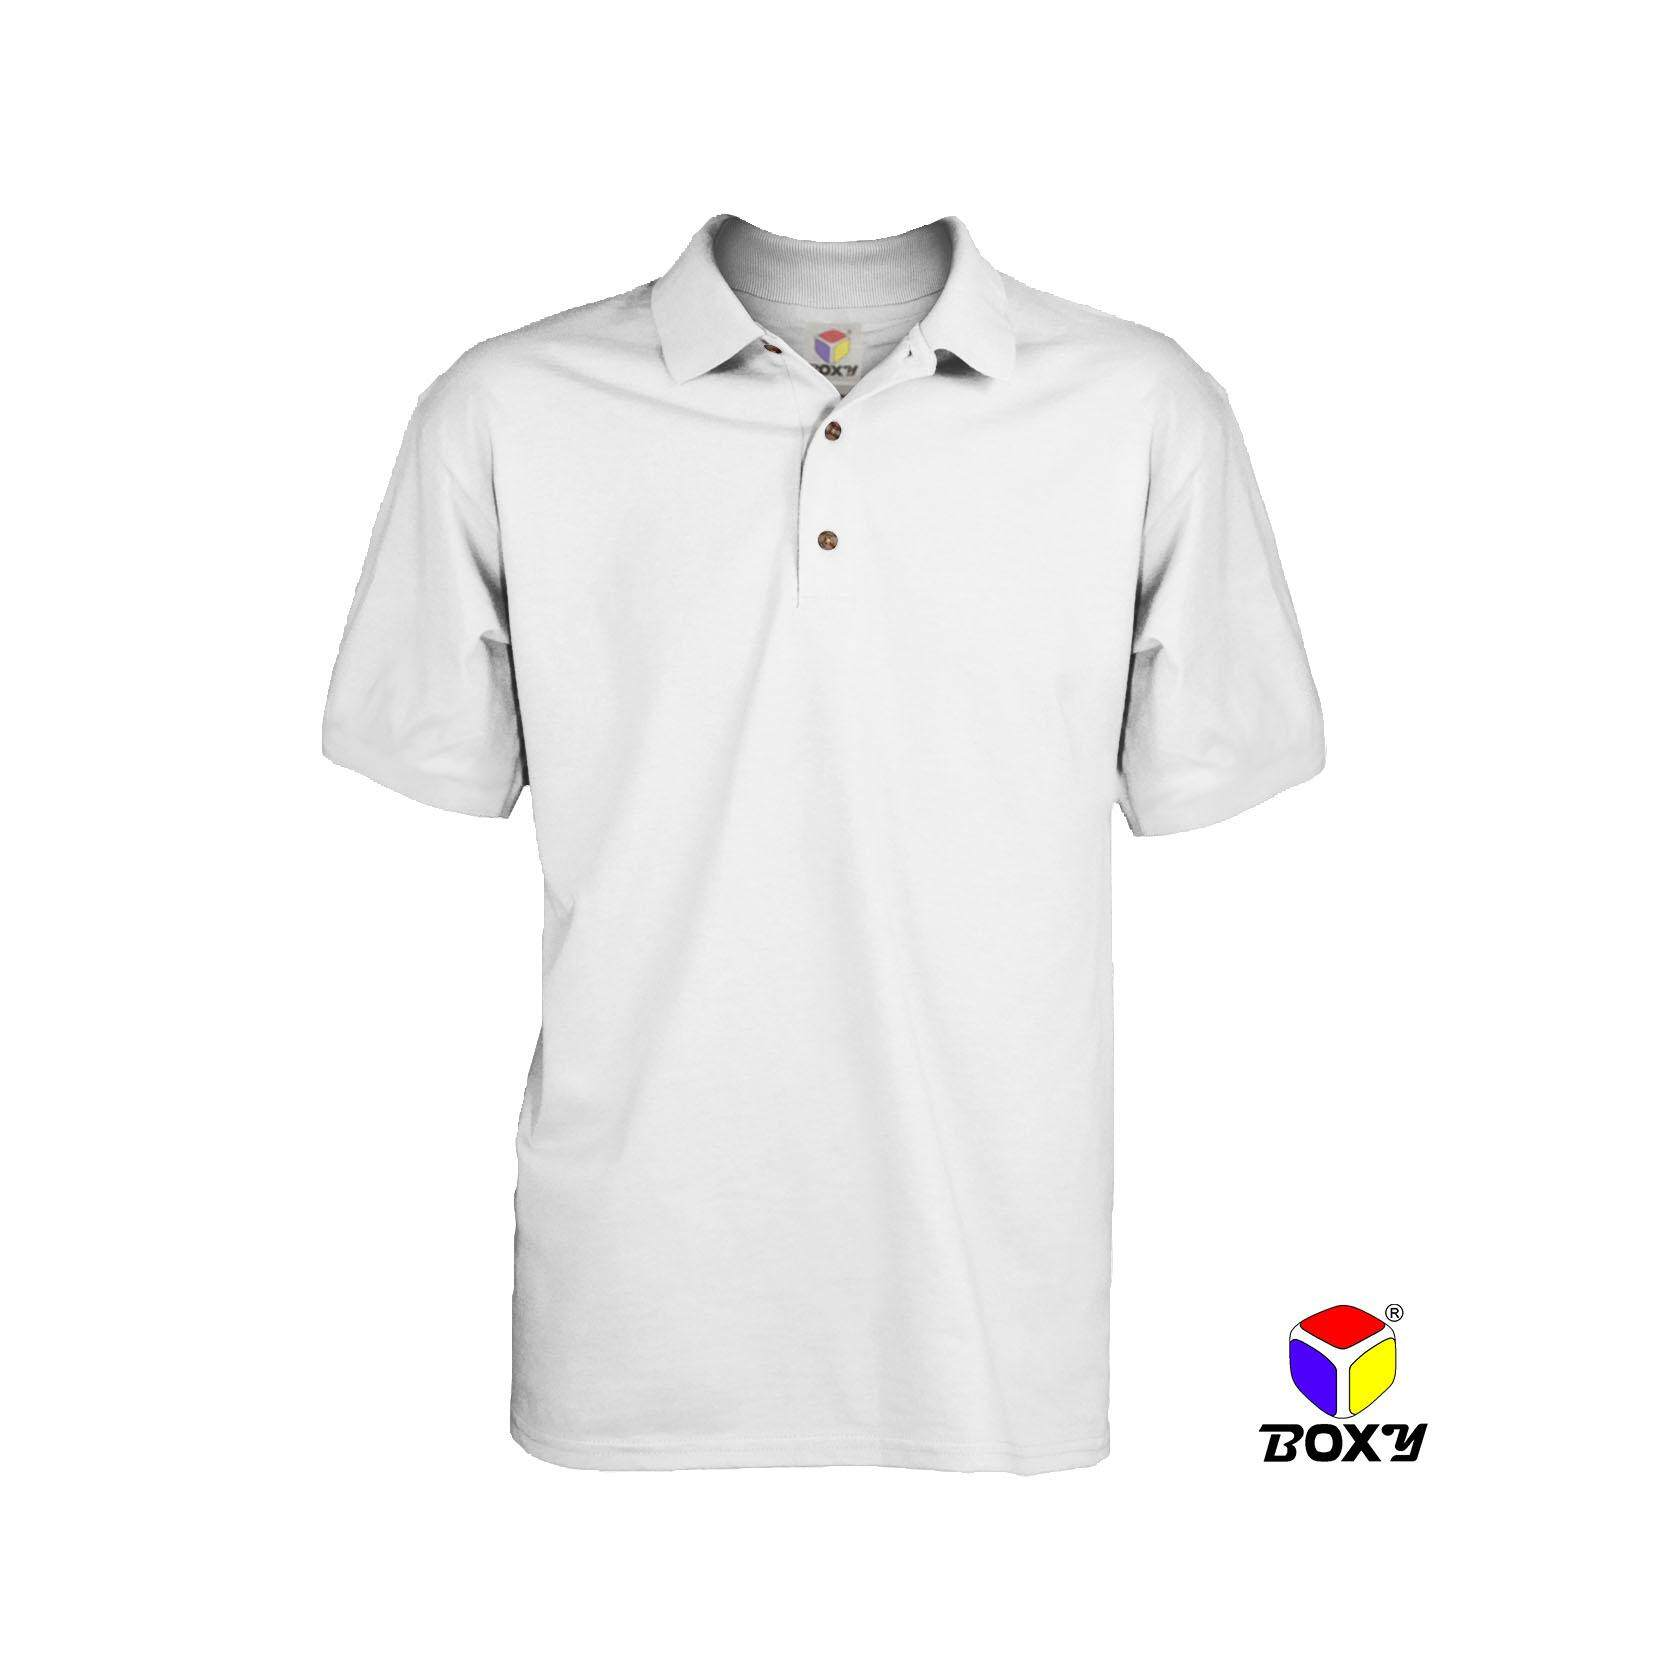 8635d77f Men's Polo Shirts - Buy Men's Polo Shirts at Best Price in Malaysia |  www.lazada.com.my